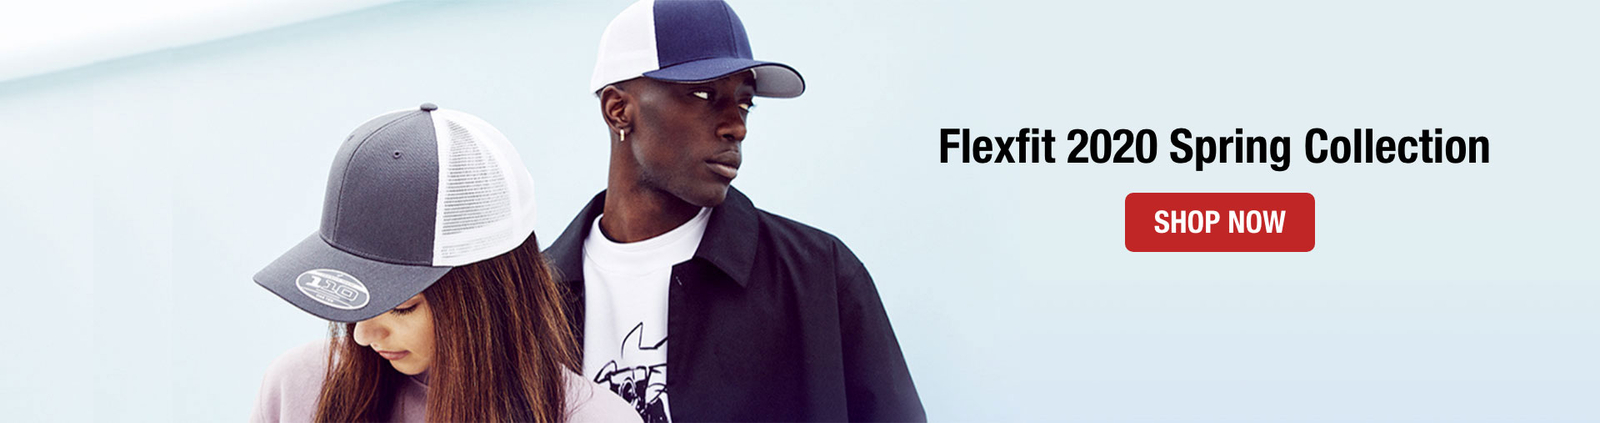 Flexfit 2020 Spring Collection